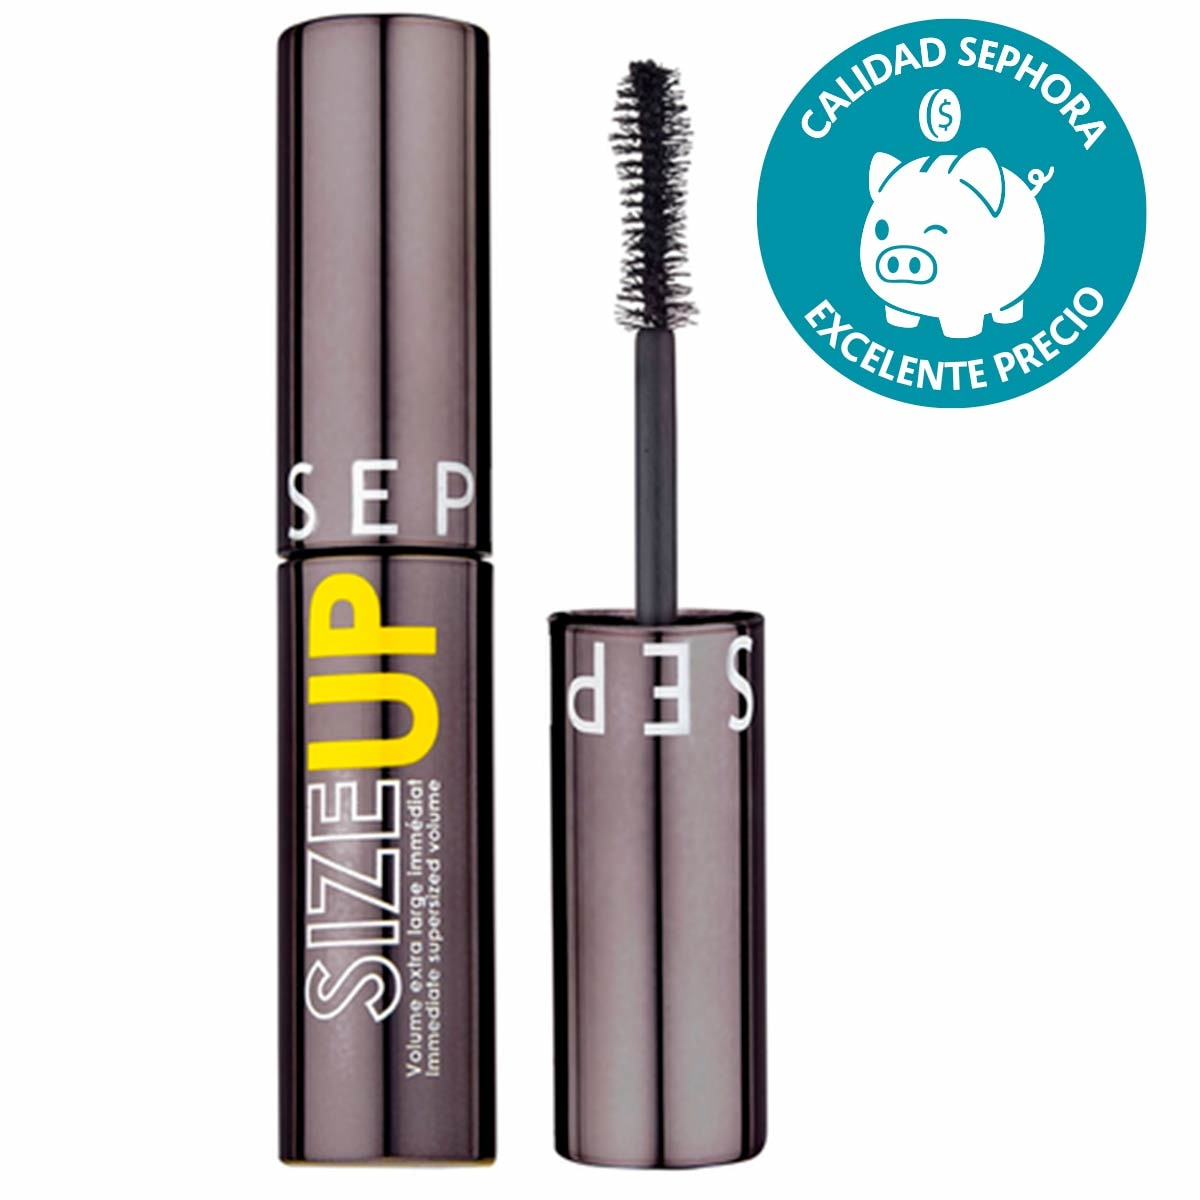 SIZE UP MASCARA VOLUME EXTRA LARGE MINI (MASCARA DE PESTAÑAS MINI)